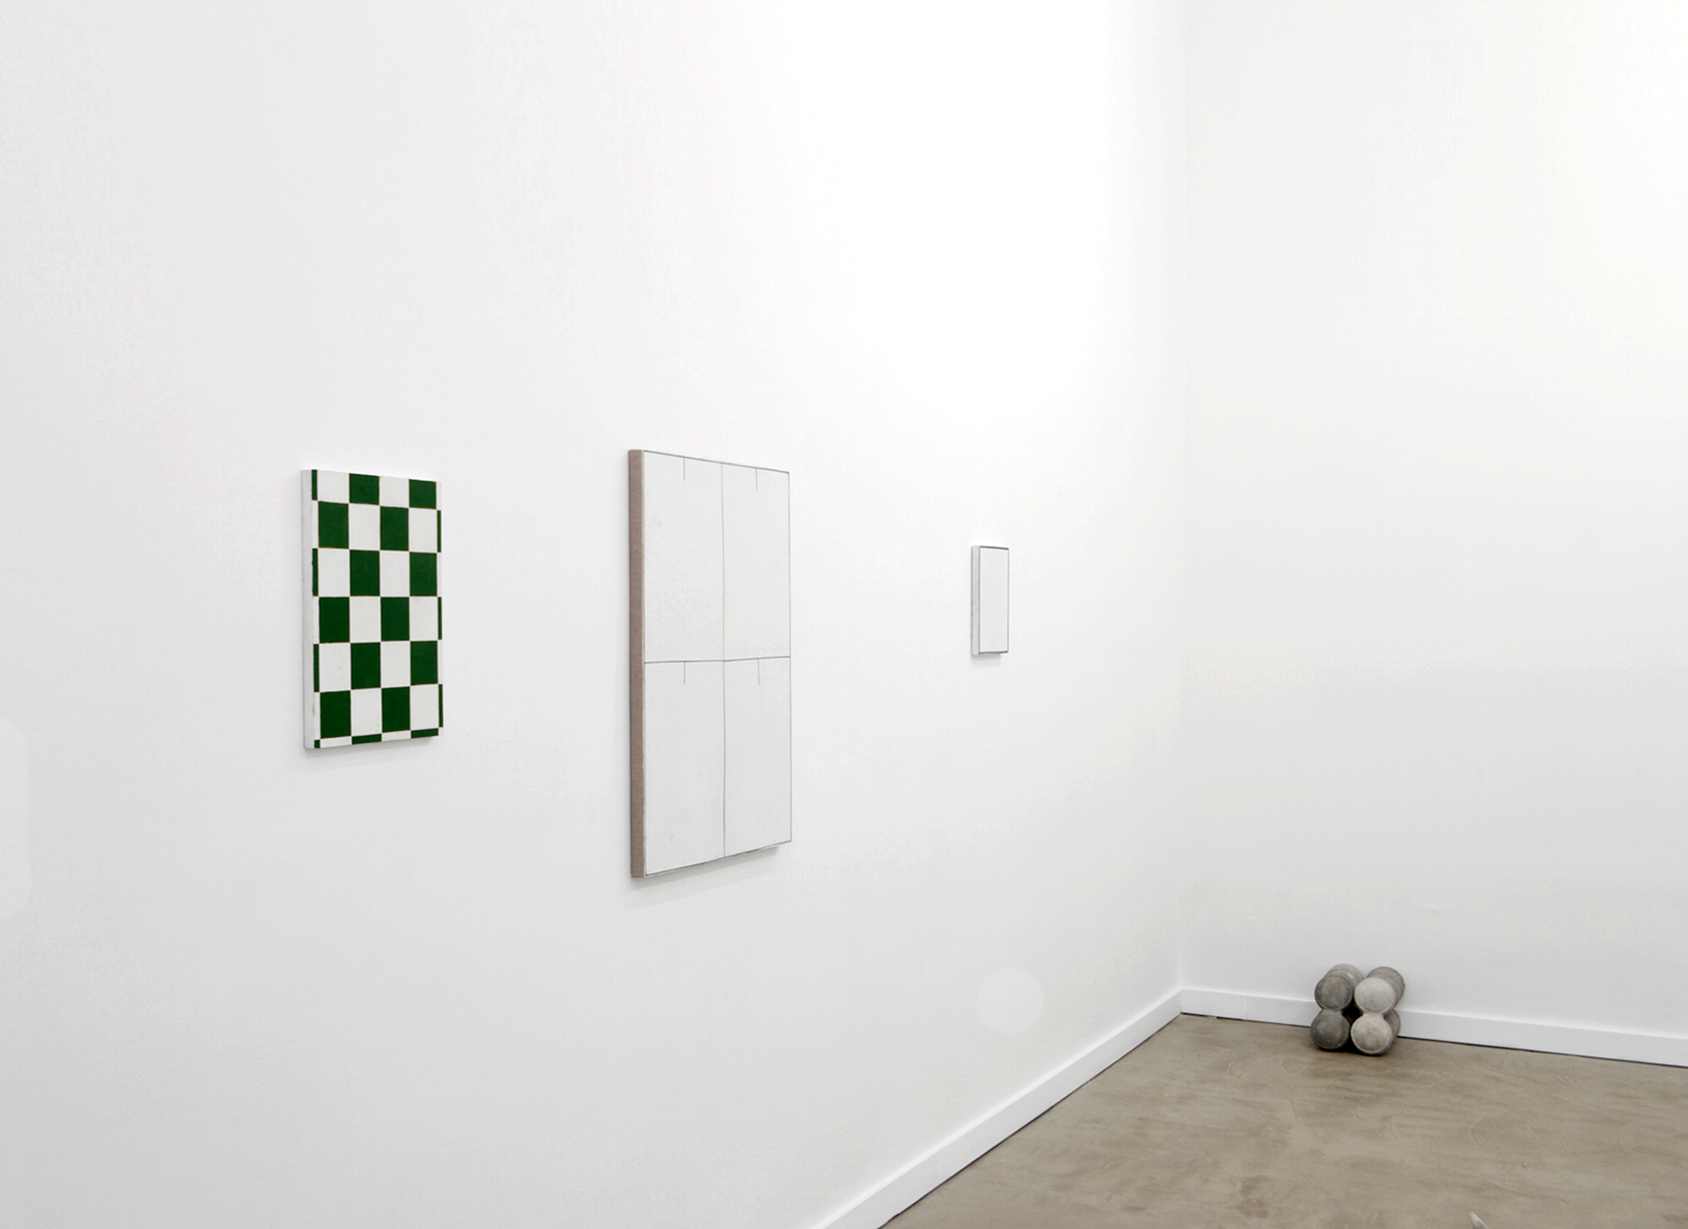 Installation view, Autoportrait